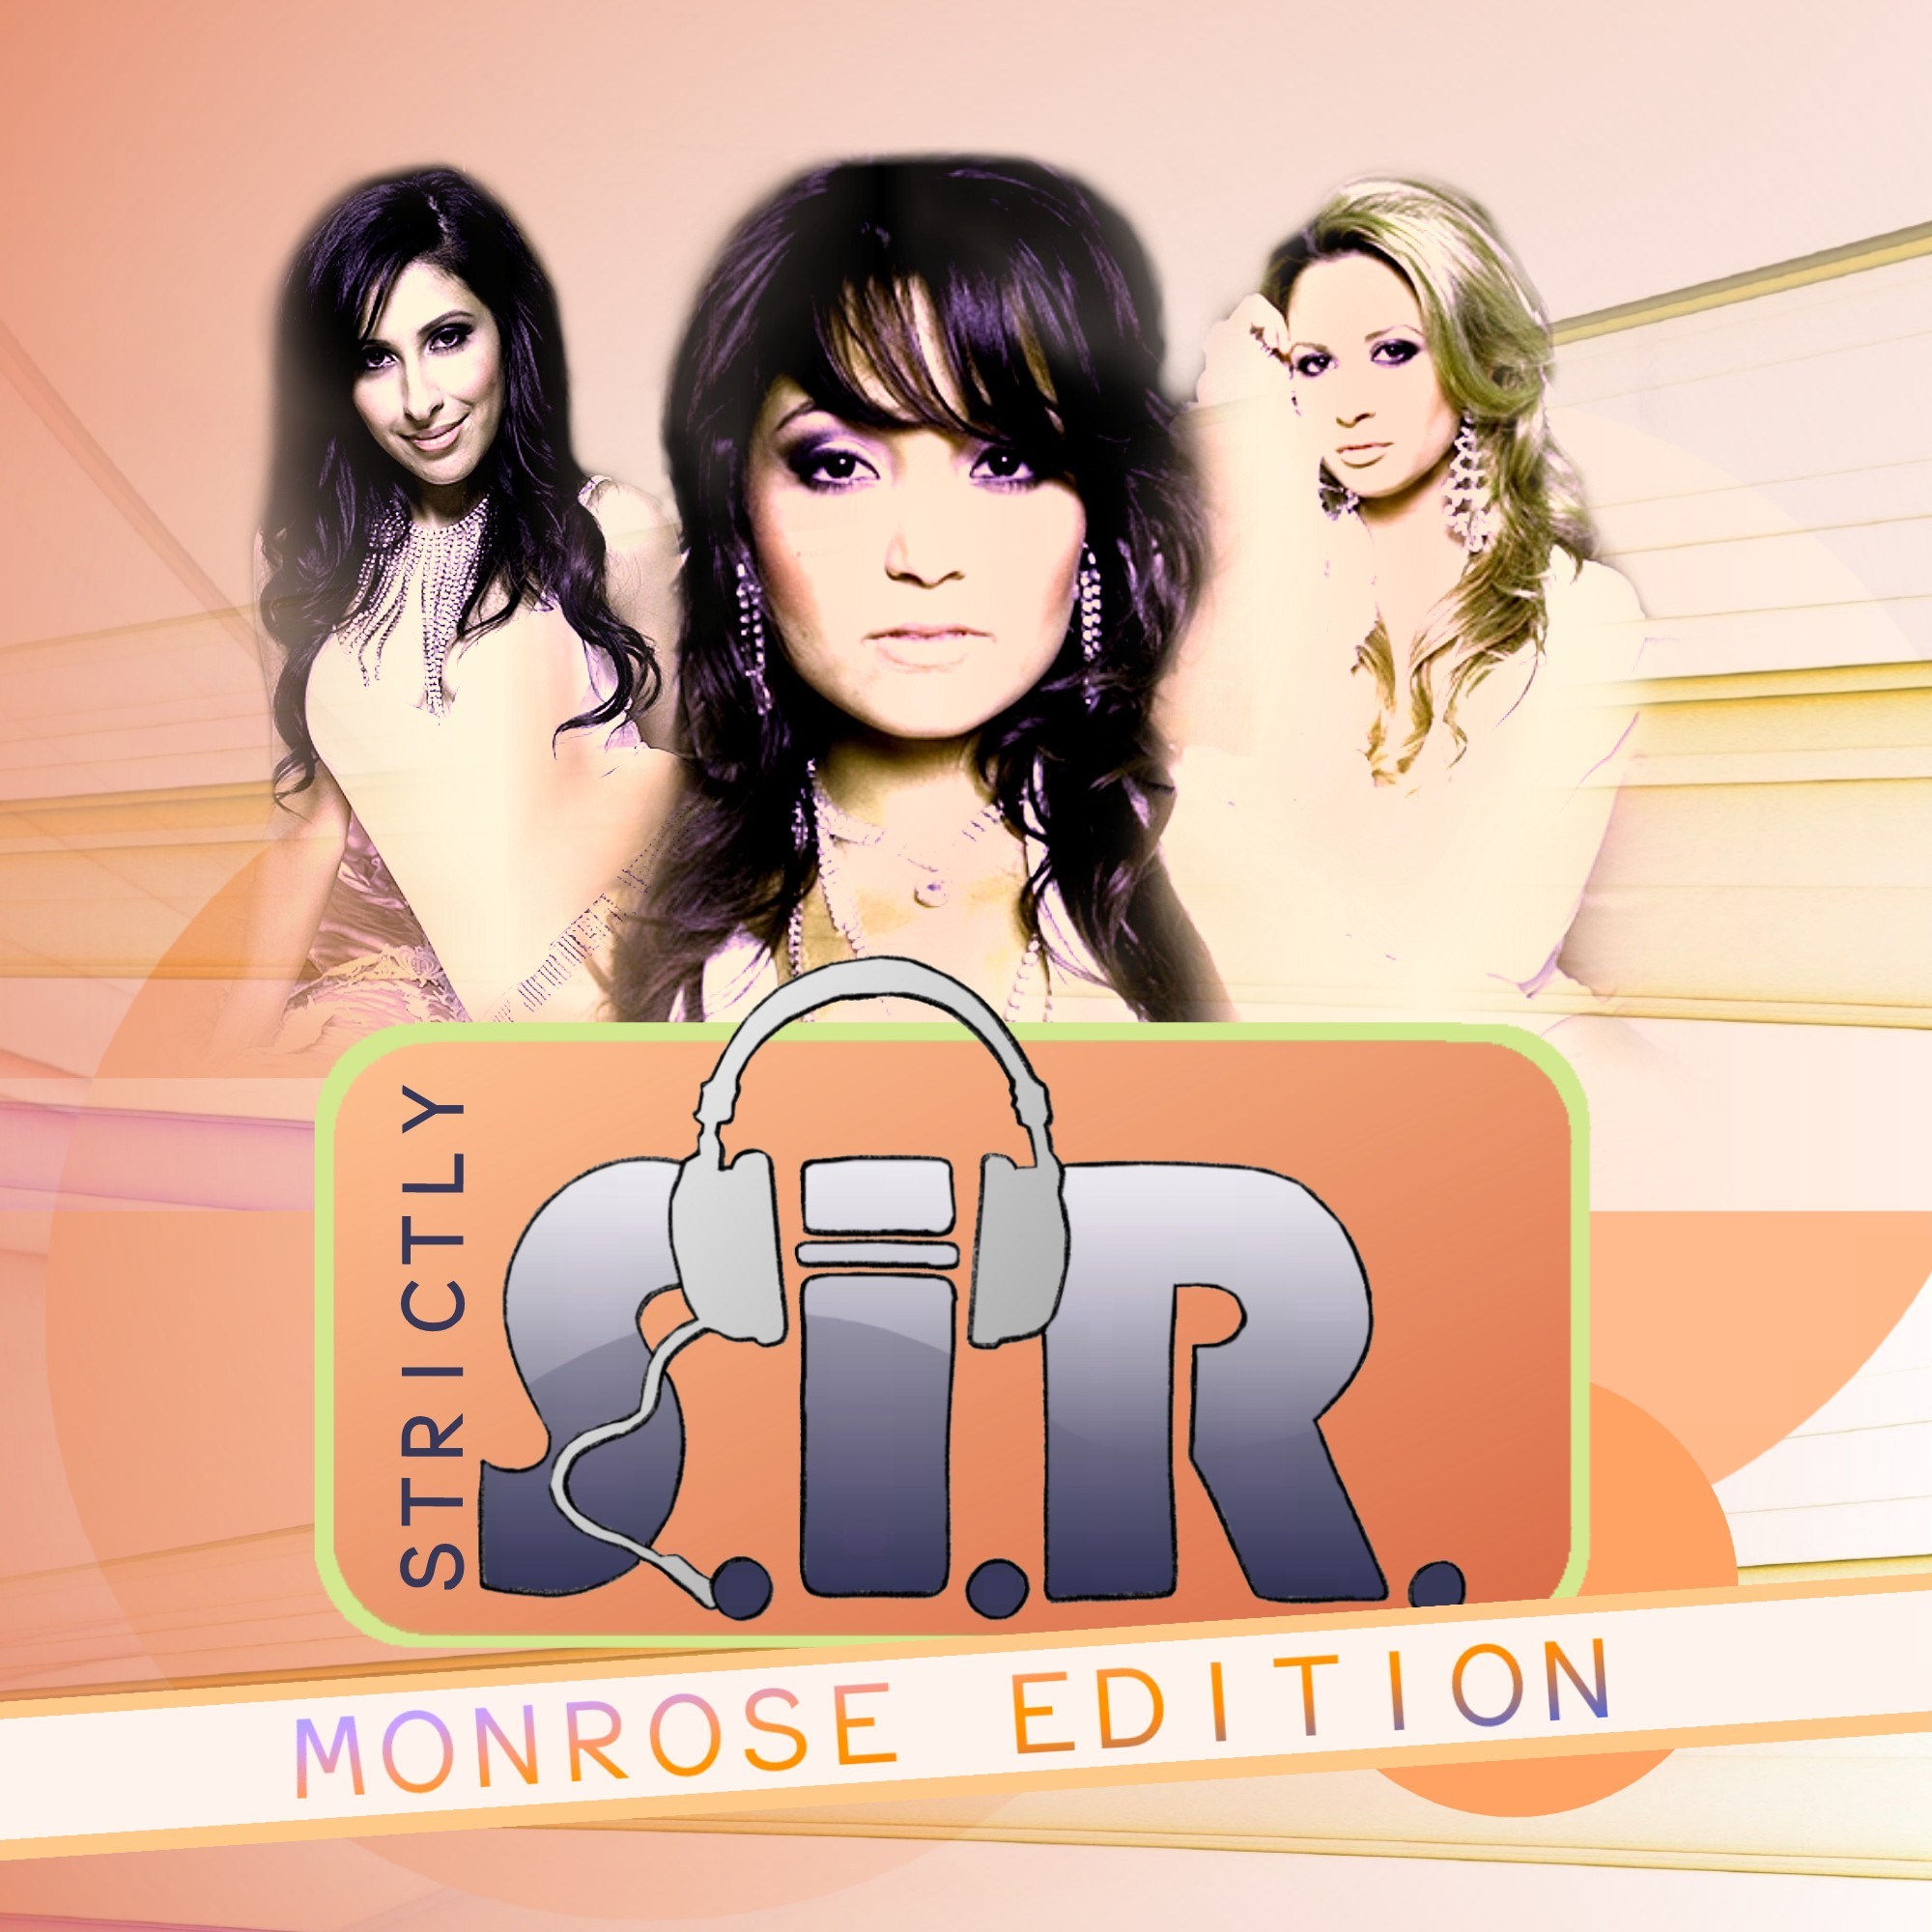 13 - Monrose vs. Harold Faltermeyer - What you don't know (J. O. Jazz Version) (S.I.R. Remix)